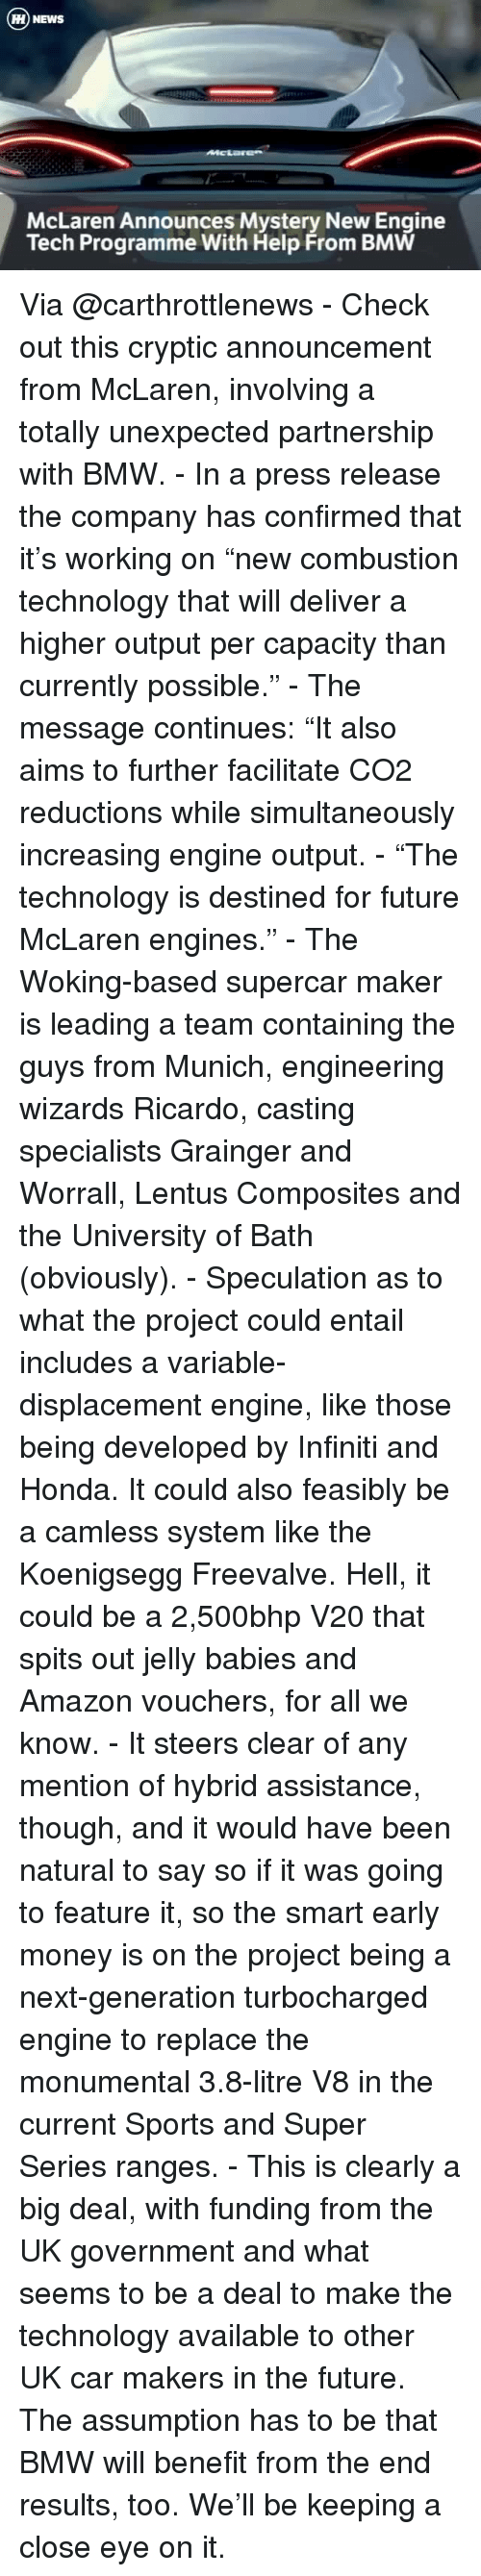 """Bmw, Honda, and Memes: H NEWS  McLaren Announces Mystery New Engine  Tech Programme With Help From BMW Via @carthrottlenews - Check out this cryptic announcement from McLaren, involving a totally unexpected partnership with BMW. - In a press release the company has confirmed that it's working on """"new combustion technology that will deliver a higher output per capacity than currently possible."""" - The message continues: """"It also aims to further facilitate CO2 reductions while simultaneously increasing engine output. - """"The technology is destined for future McLaren engines."""" - The Woking-based supercar maker is leading a team containing the guys from Munich, engineering wizards Ricardo, casting specialists Grainger and Worrall, Lentus Composites and the University of Bath (obviously). - Speculation as to what the project could entail includes a variable-displacement engine, like those being developed by Infiniti and Honda. It could also feasibly be a camless system like the Koenigsegg Freevalve. Hell, it could be a 2,500bhp V20 that spits out jelly babies and Amazon vouchers, for all we know. - It steers clear of any mention of hybrid assistance, though, and it would have been natural to say so if it was going to feature it, so the smart early money is on the project being a next-generation turbocharged engine to replace the monumental 3.8-litre V8 in the current Sports and Super Series ranges. - This is clearly a big deal, with funding from the UK government and what seems to be a deal to make the technology available to other UK car makers in the future. The assumption has to be that BMW will benefit from the end results, too. We'll be keeping a close eye on it."""